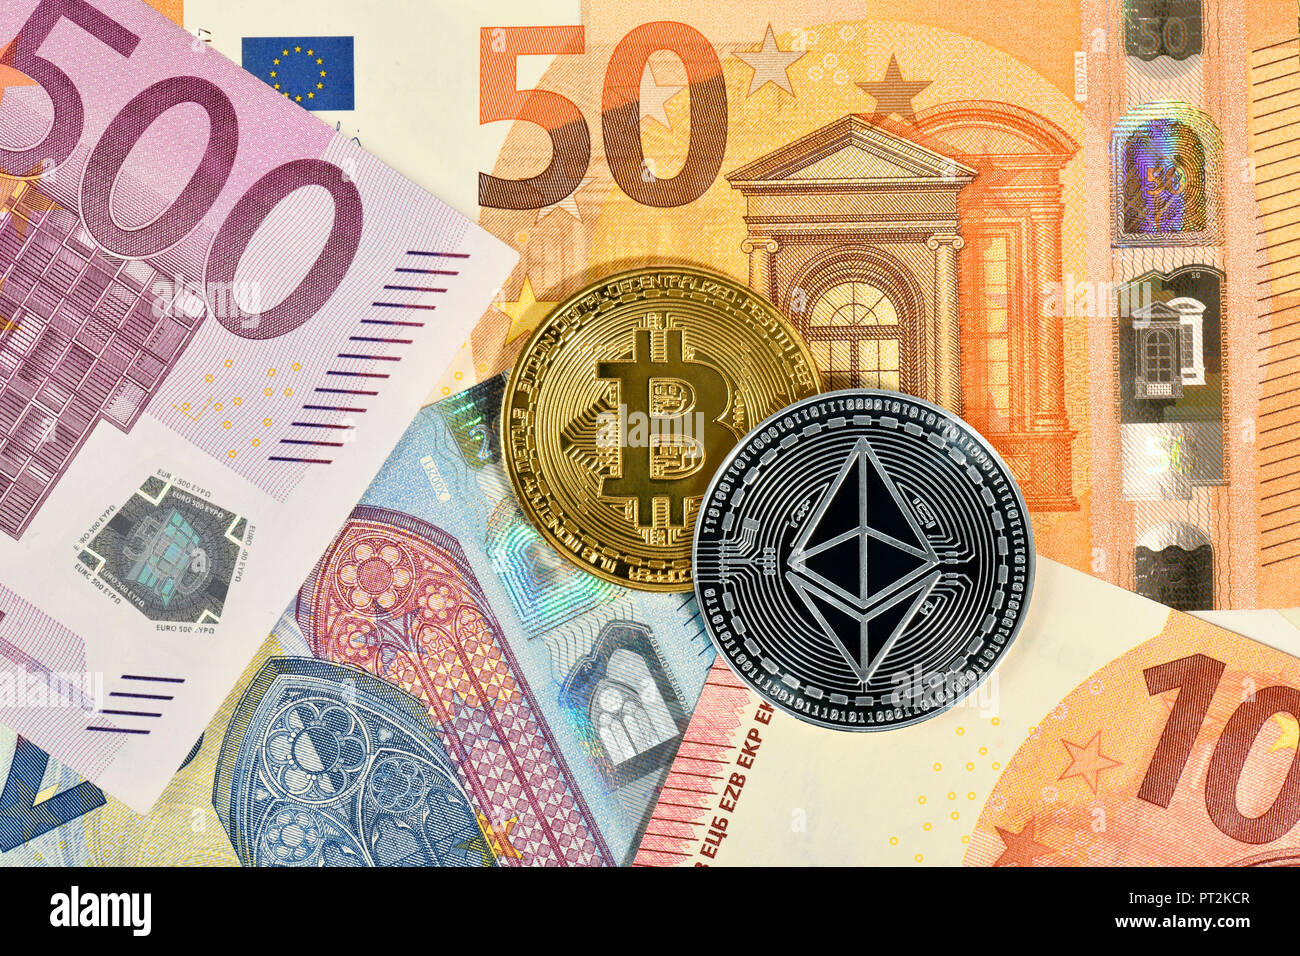 Symbolic image of digital currency, golden physical coin Bitcoin and silver physical coin Ethereum on EURO banknotes Stock Photo